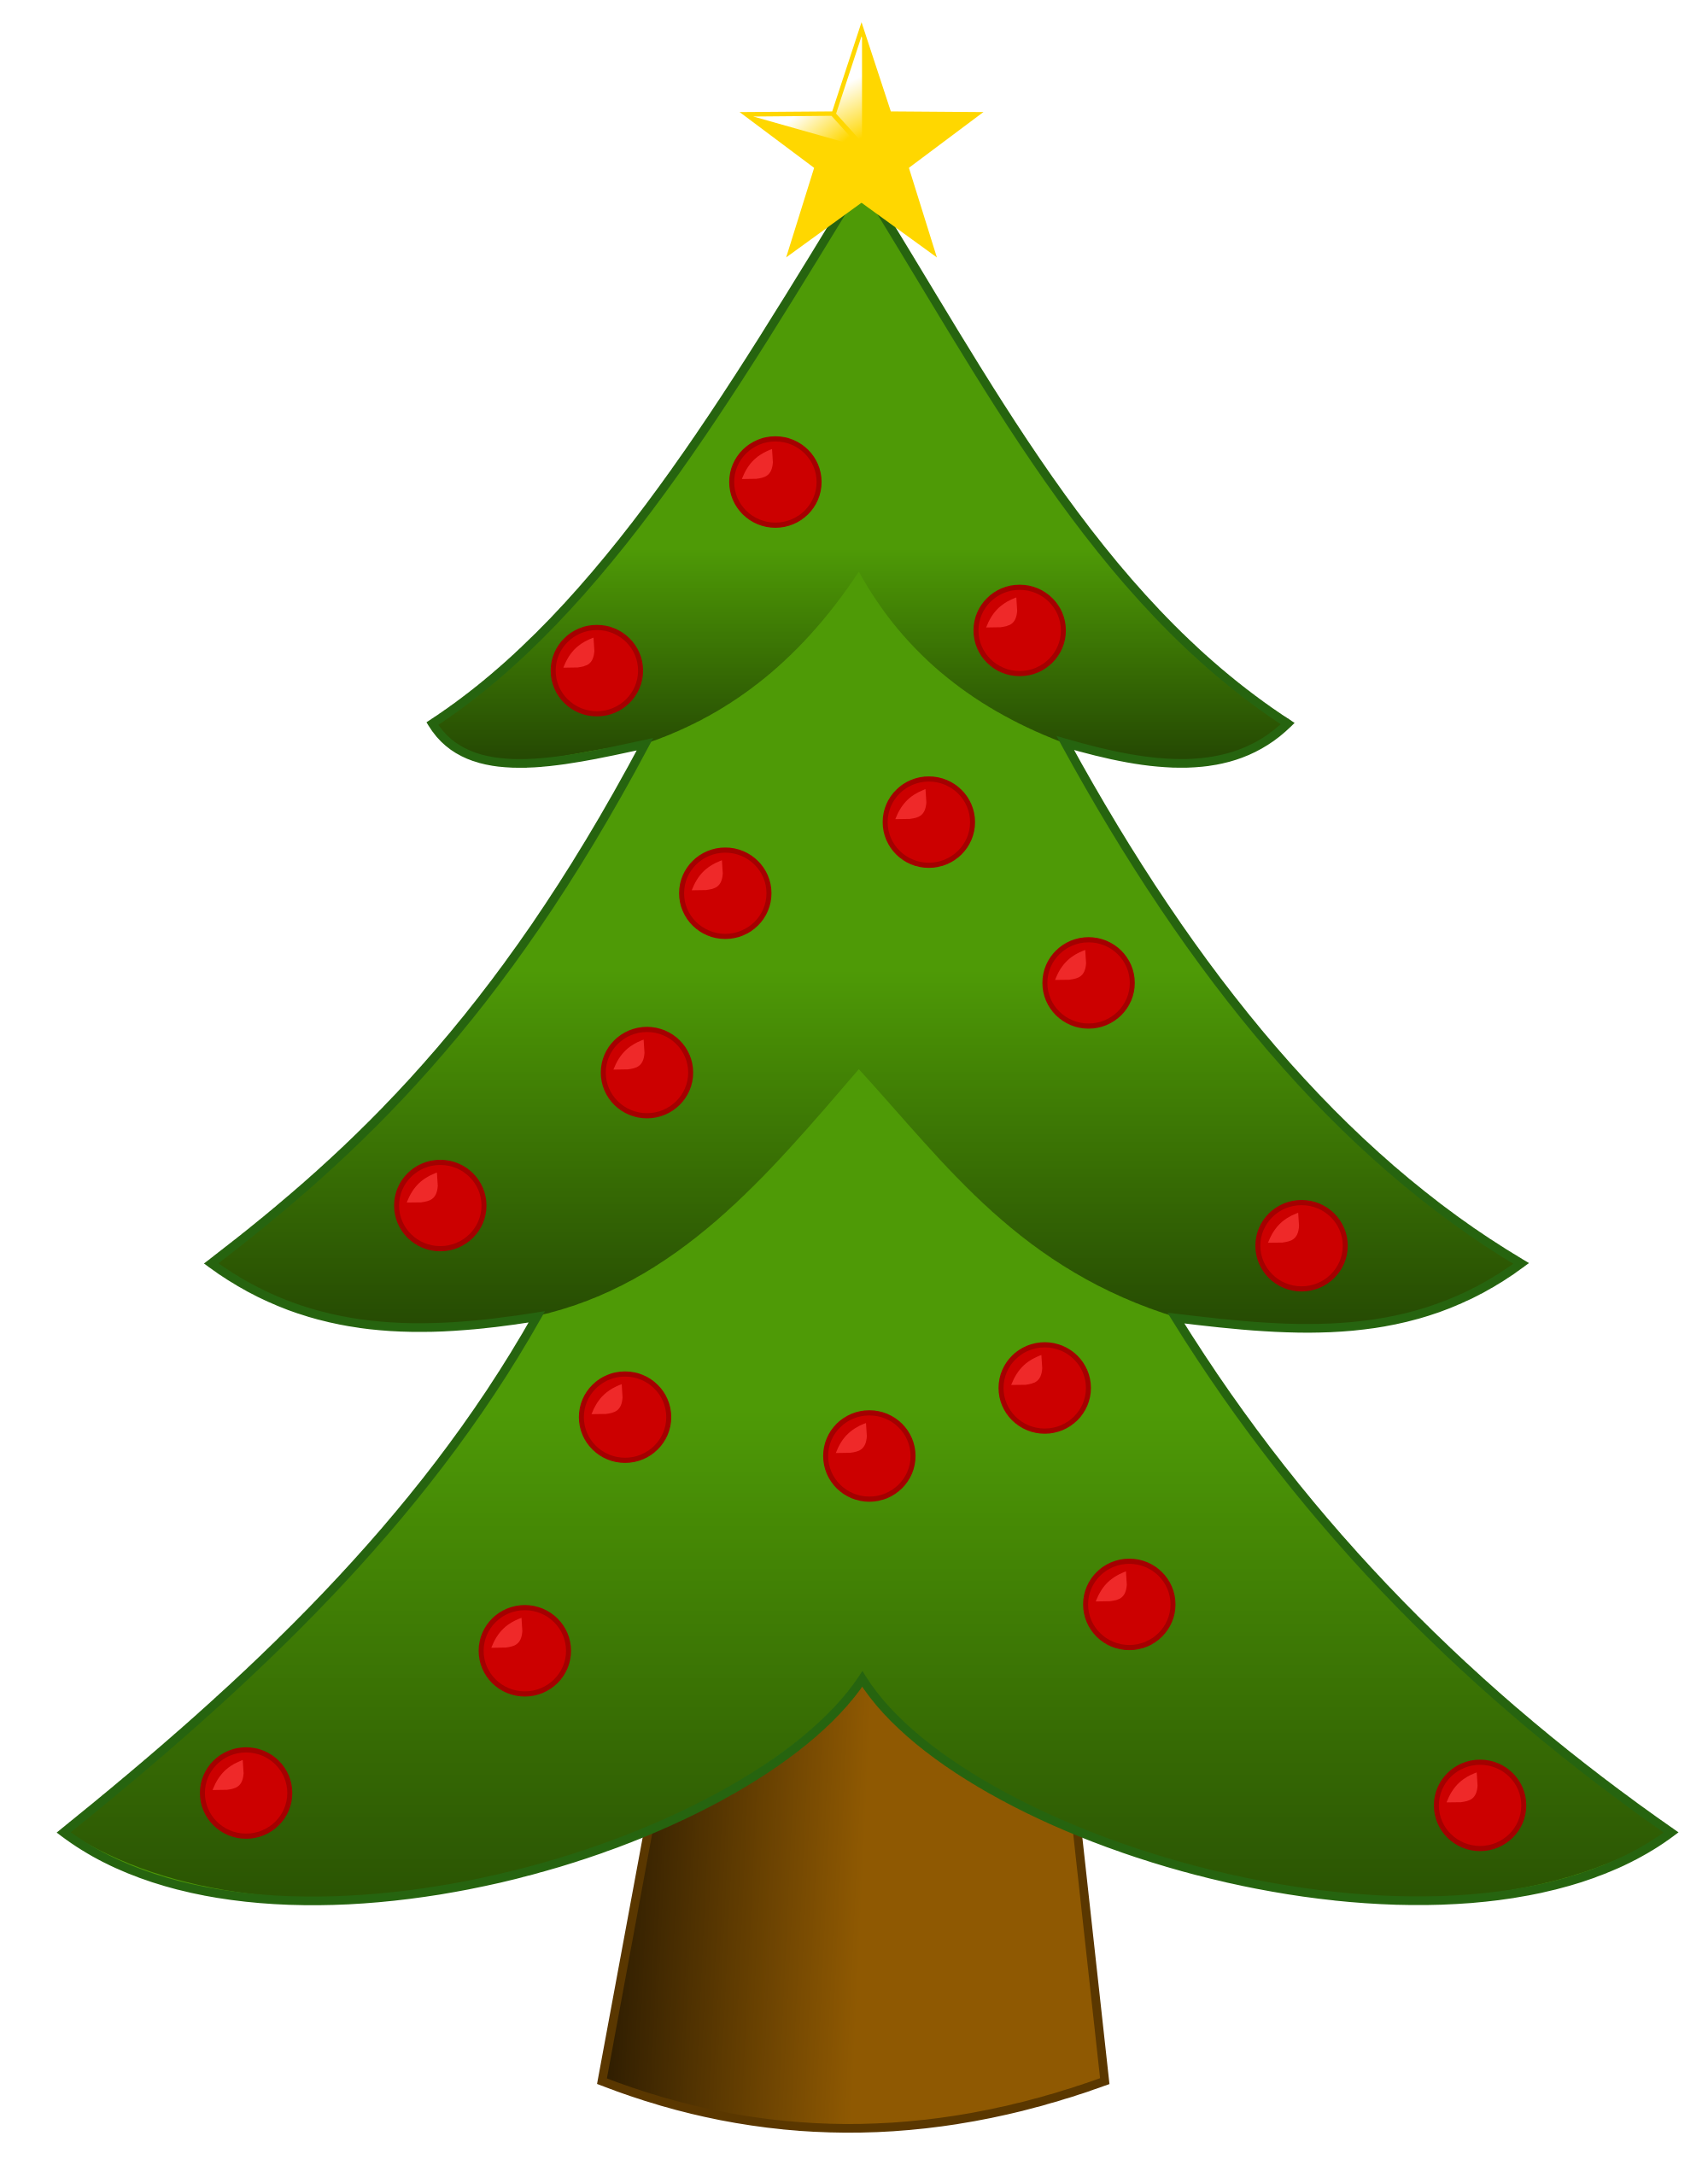 Grinch tree clipart image download Christmas Tree Clipart#4514905 - Shop of Clipart Library image download